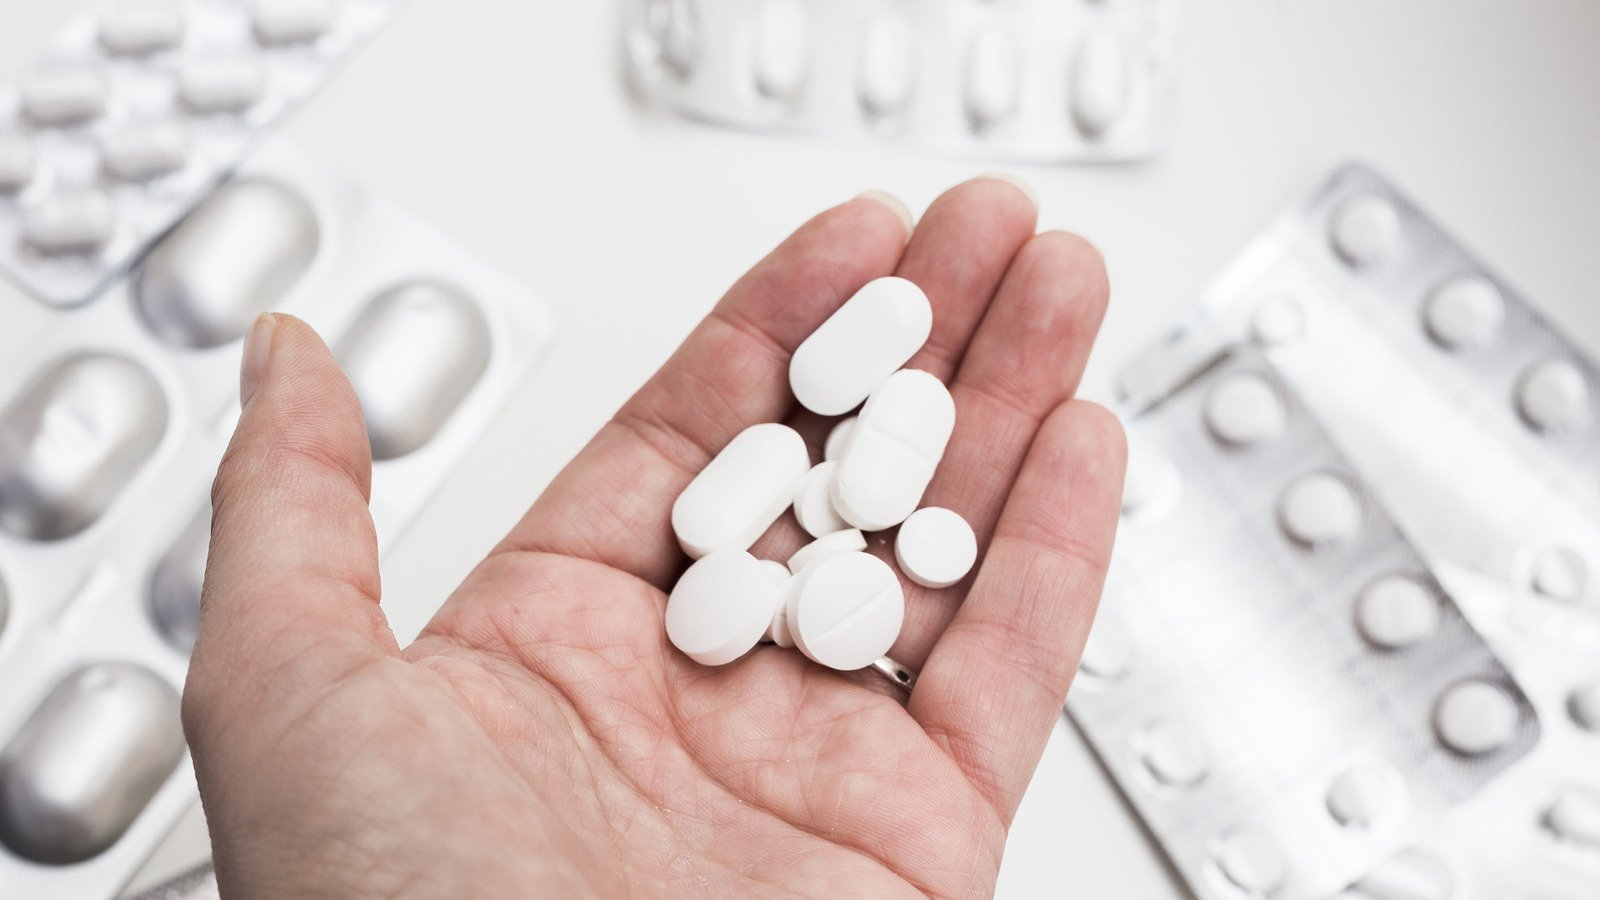 When Should You Take Acetaminophen Instead Of Ibuprofen?